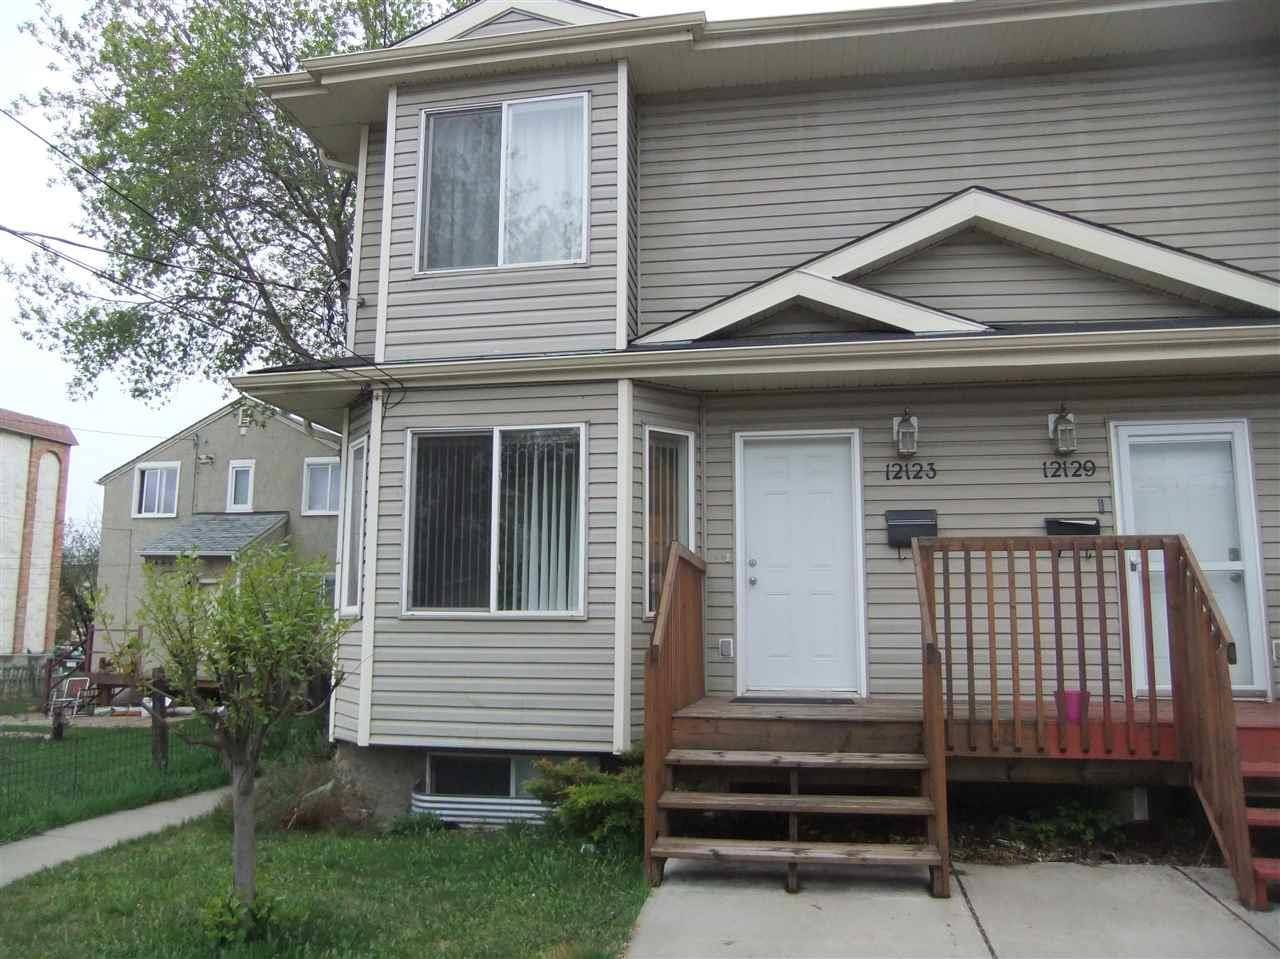 Townhouse for sale at 12123 82 St Nw Edmonton Alberta - MLS: E4158376